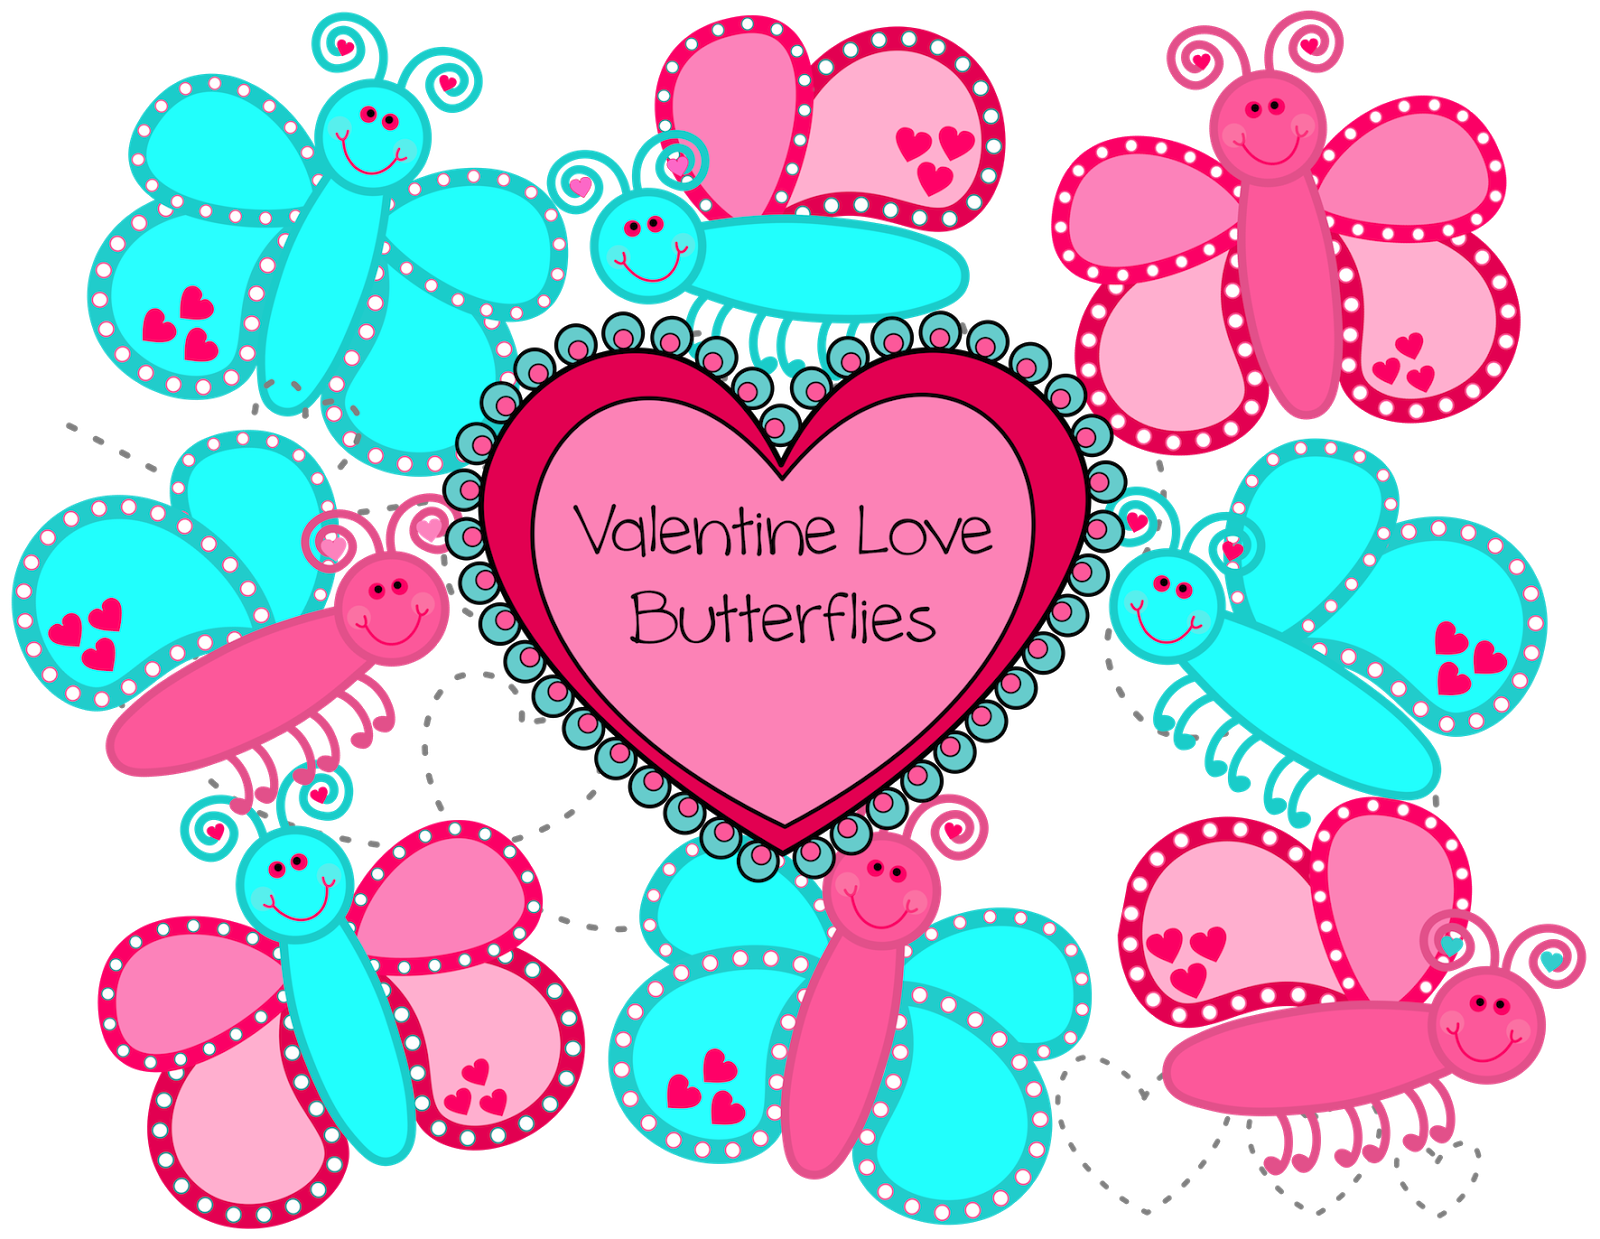 Heart butterfly clipart picture black and white download Classroom Treasures: Clip Art picture black and white download